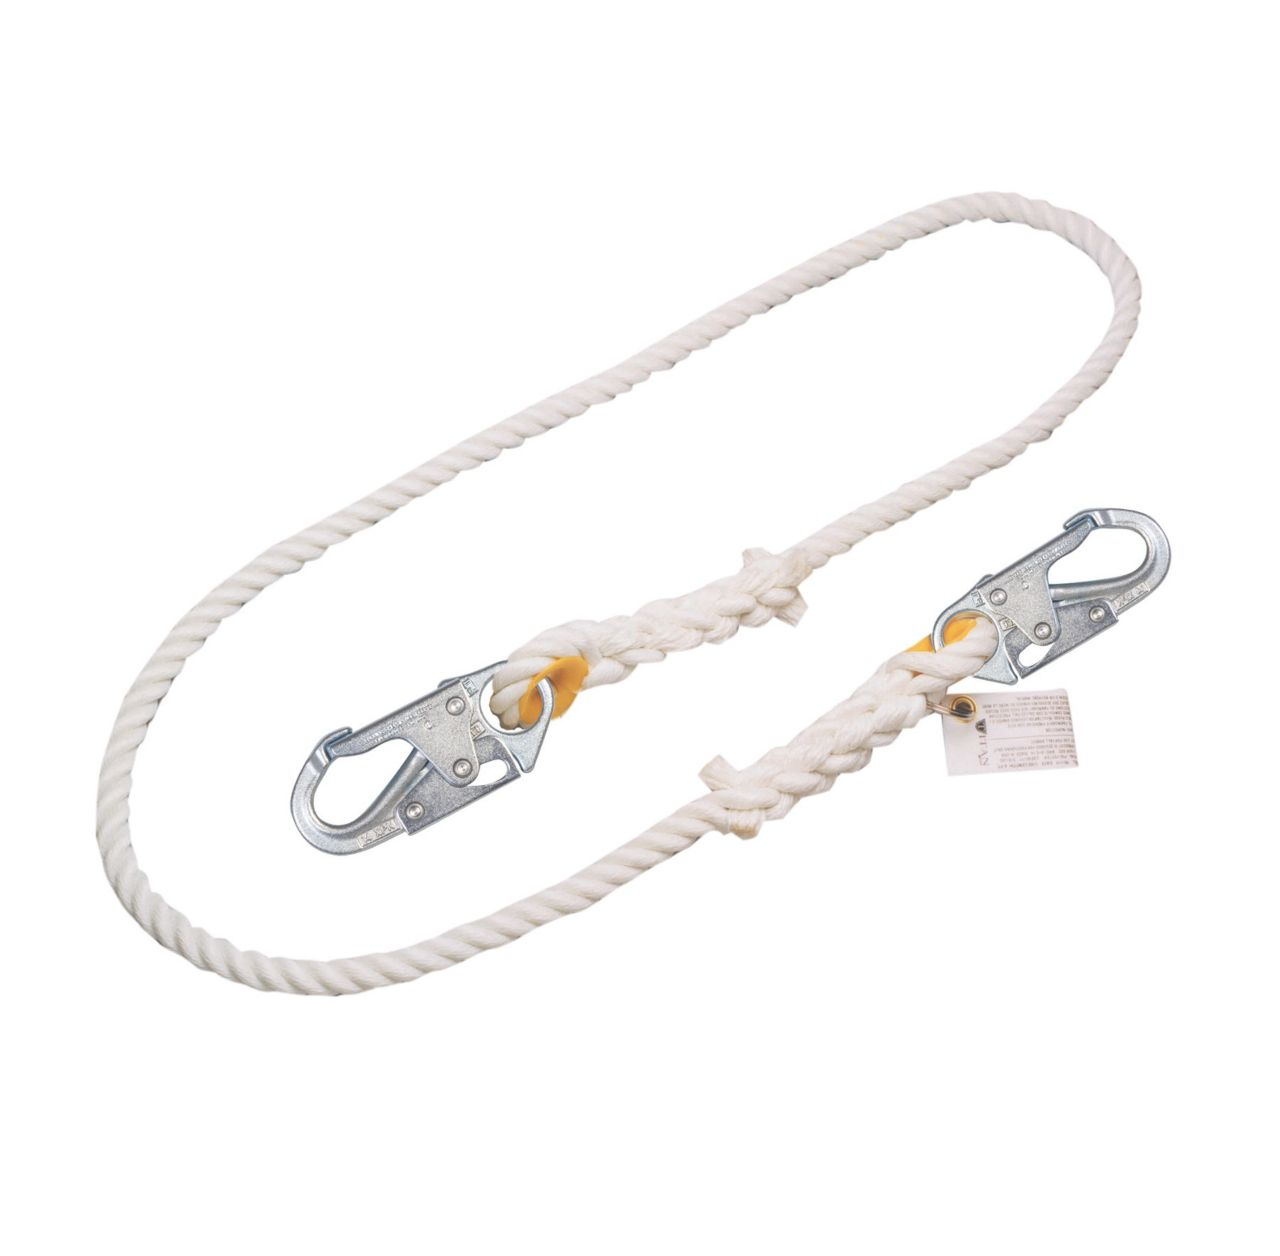 Miller Titan II Positioning and Restraint Lanyards and Positioning Assemblies_1